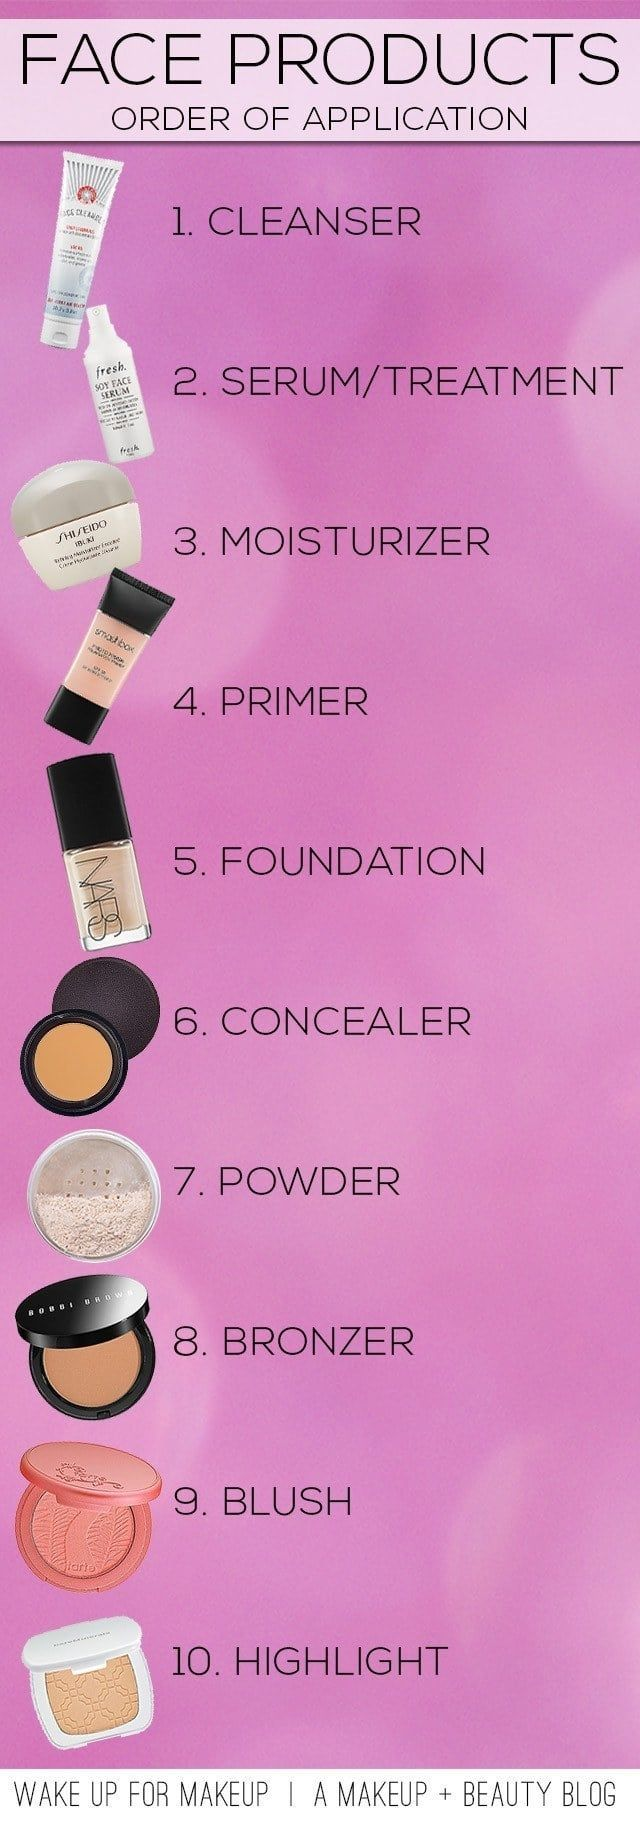 27 Ways To Help Your Makeup Look Better Than Ever Before